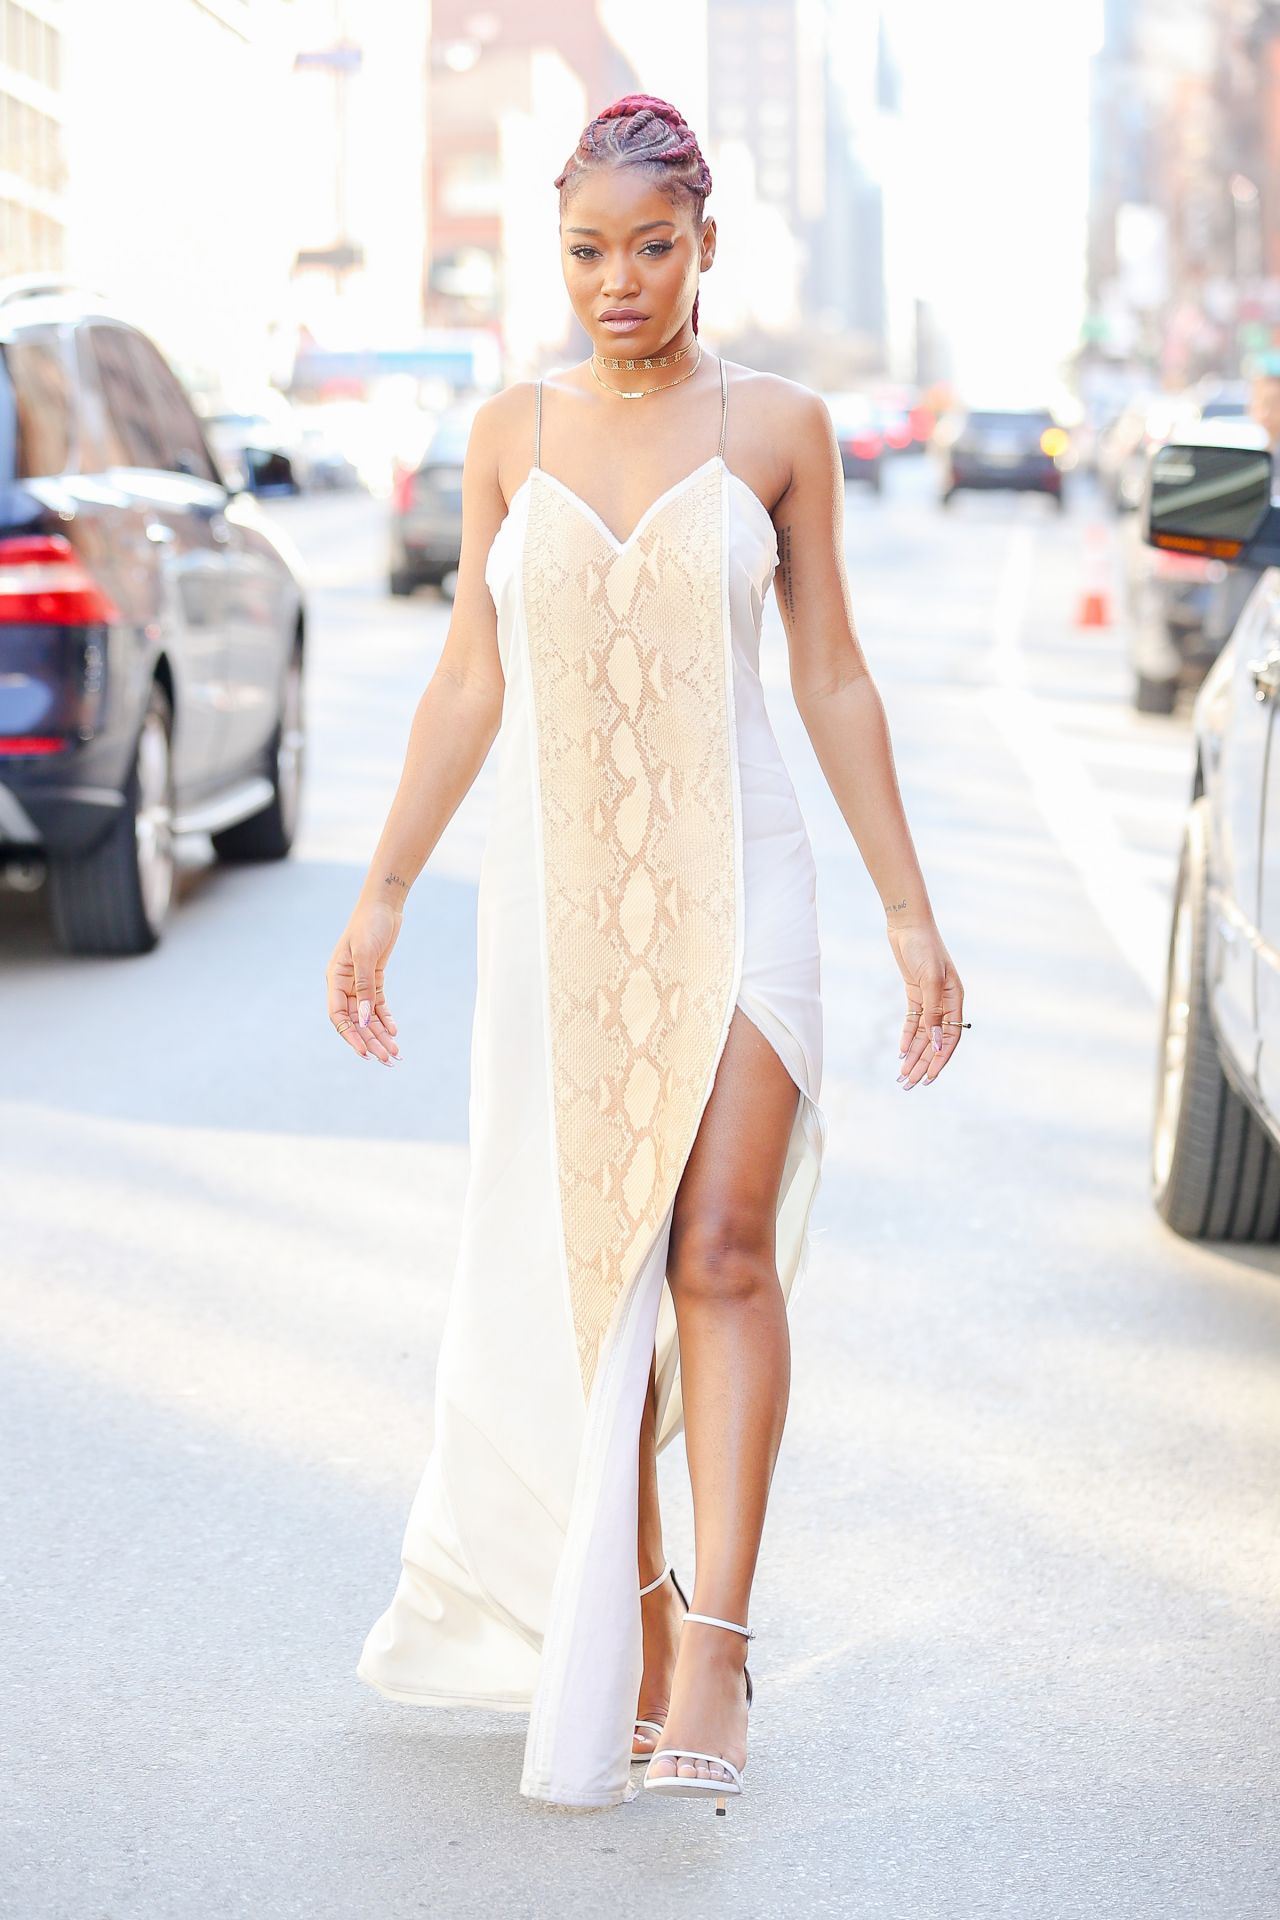 Keke Palmer - Looks Radiant in a White Snakeskin Print Gown With ...